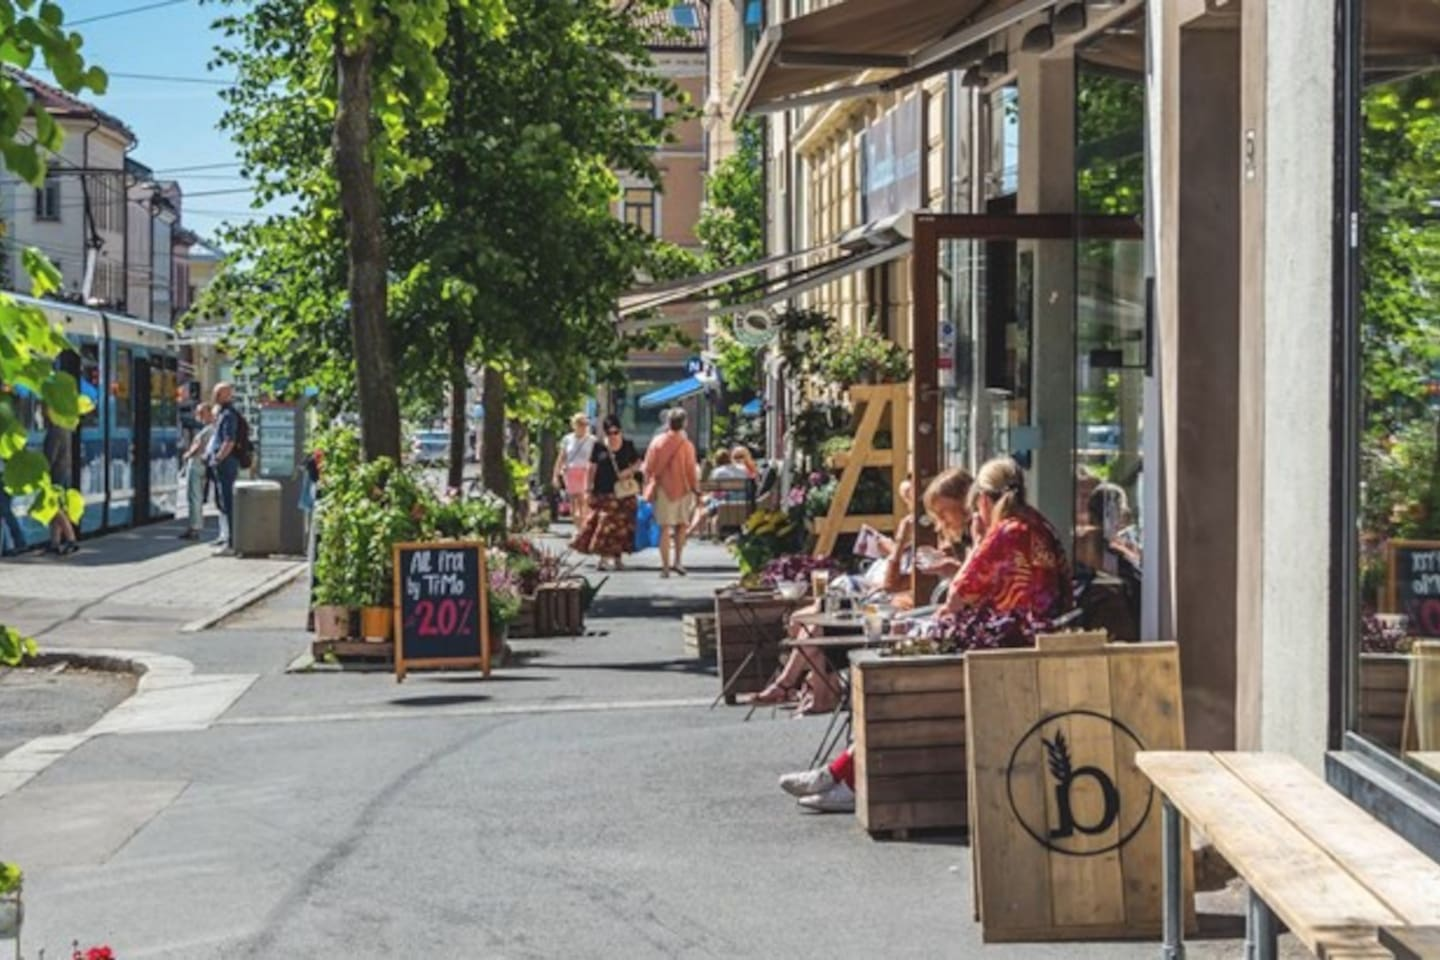 Entrance of the building is just behind those two women on the right side, enjoying a coffee on the neighbor coffee shop! Beautiful area called Torshov, next to Grünerløkka. The tram stop on the left  takes you all over the city (The Castle, Aker Brygge, Oslo Central Station, National theatre, Majorstuen, and many more. 3 different tram lines). I use it every day to get around :)